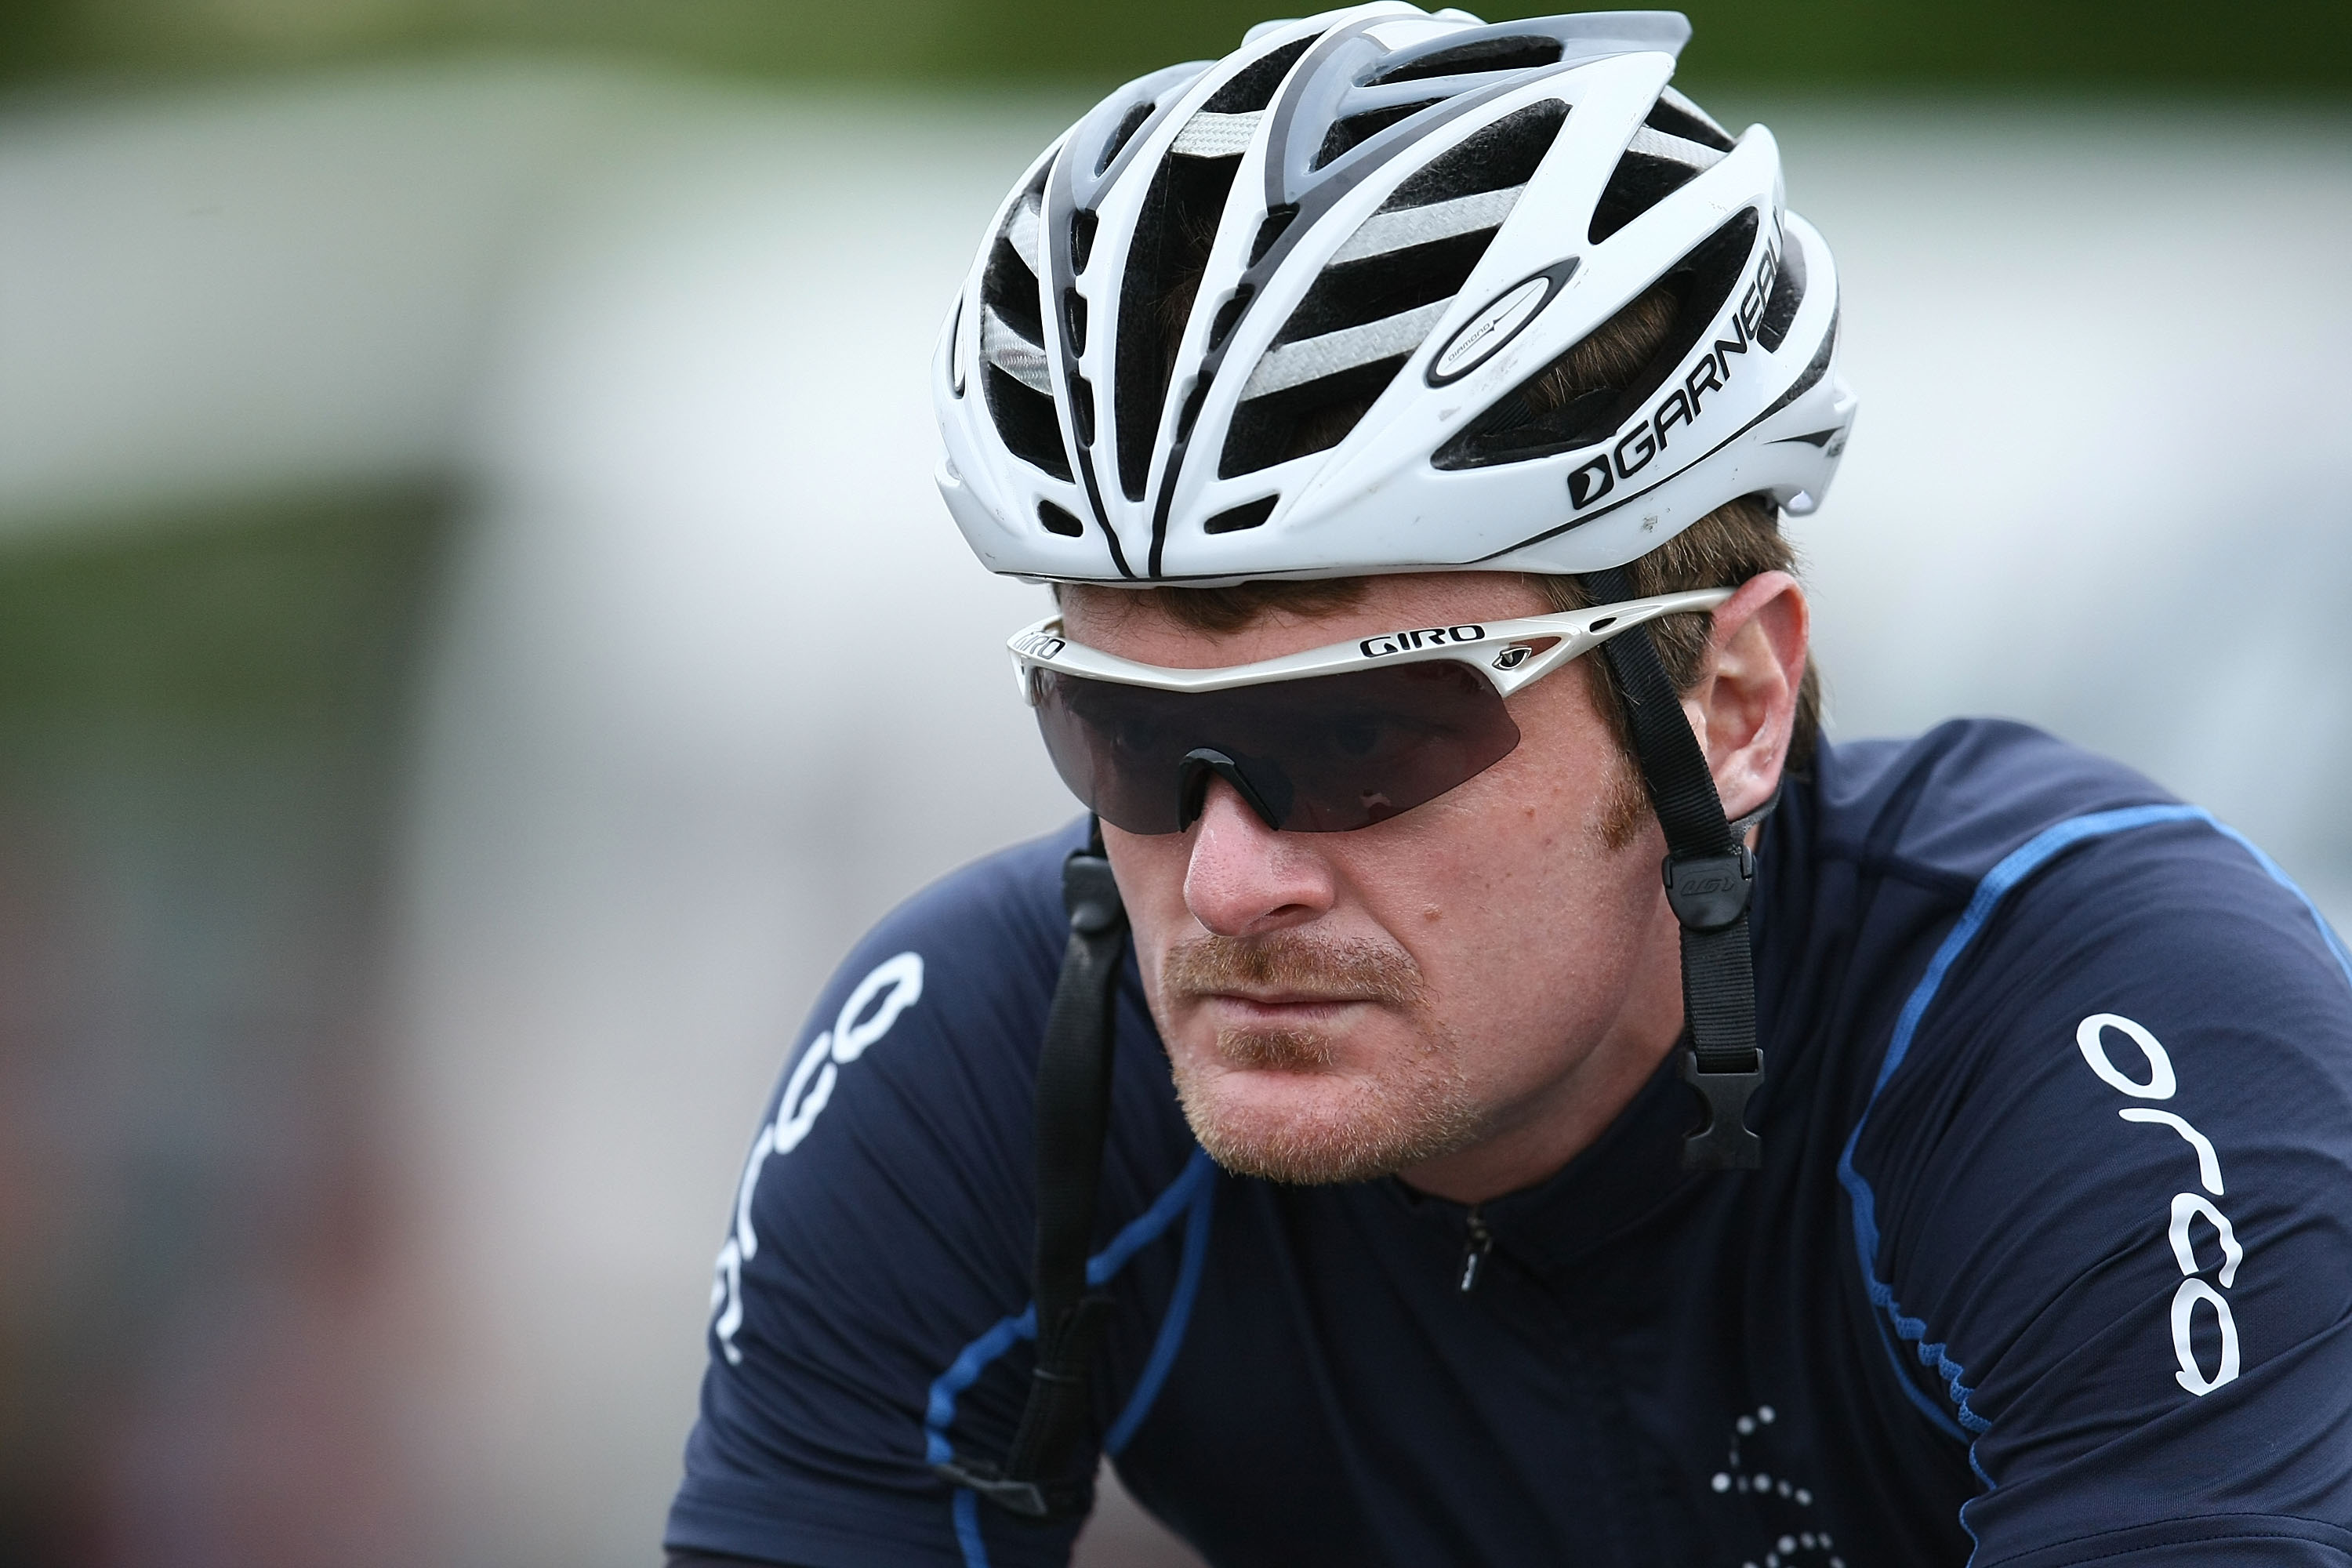 Floyd Landis experienced the highs and the very lows of life in 2006.